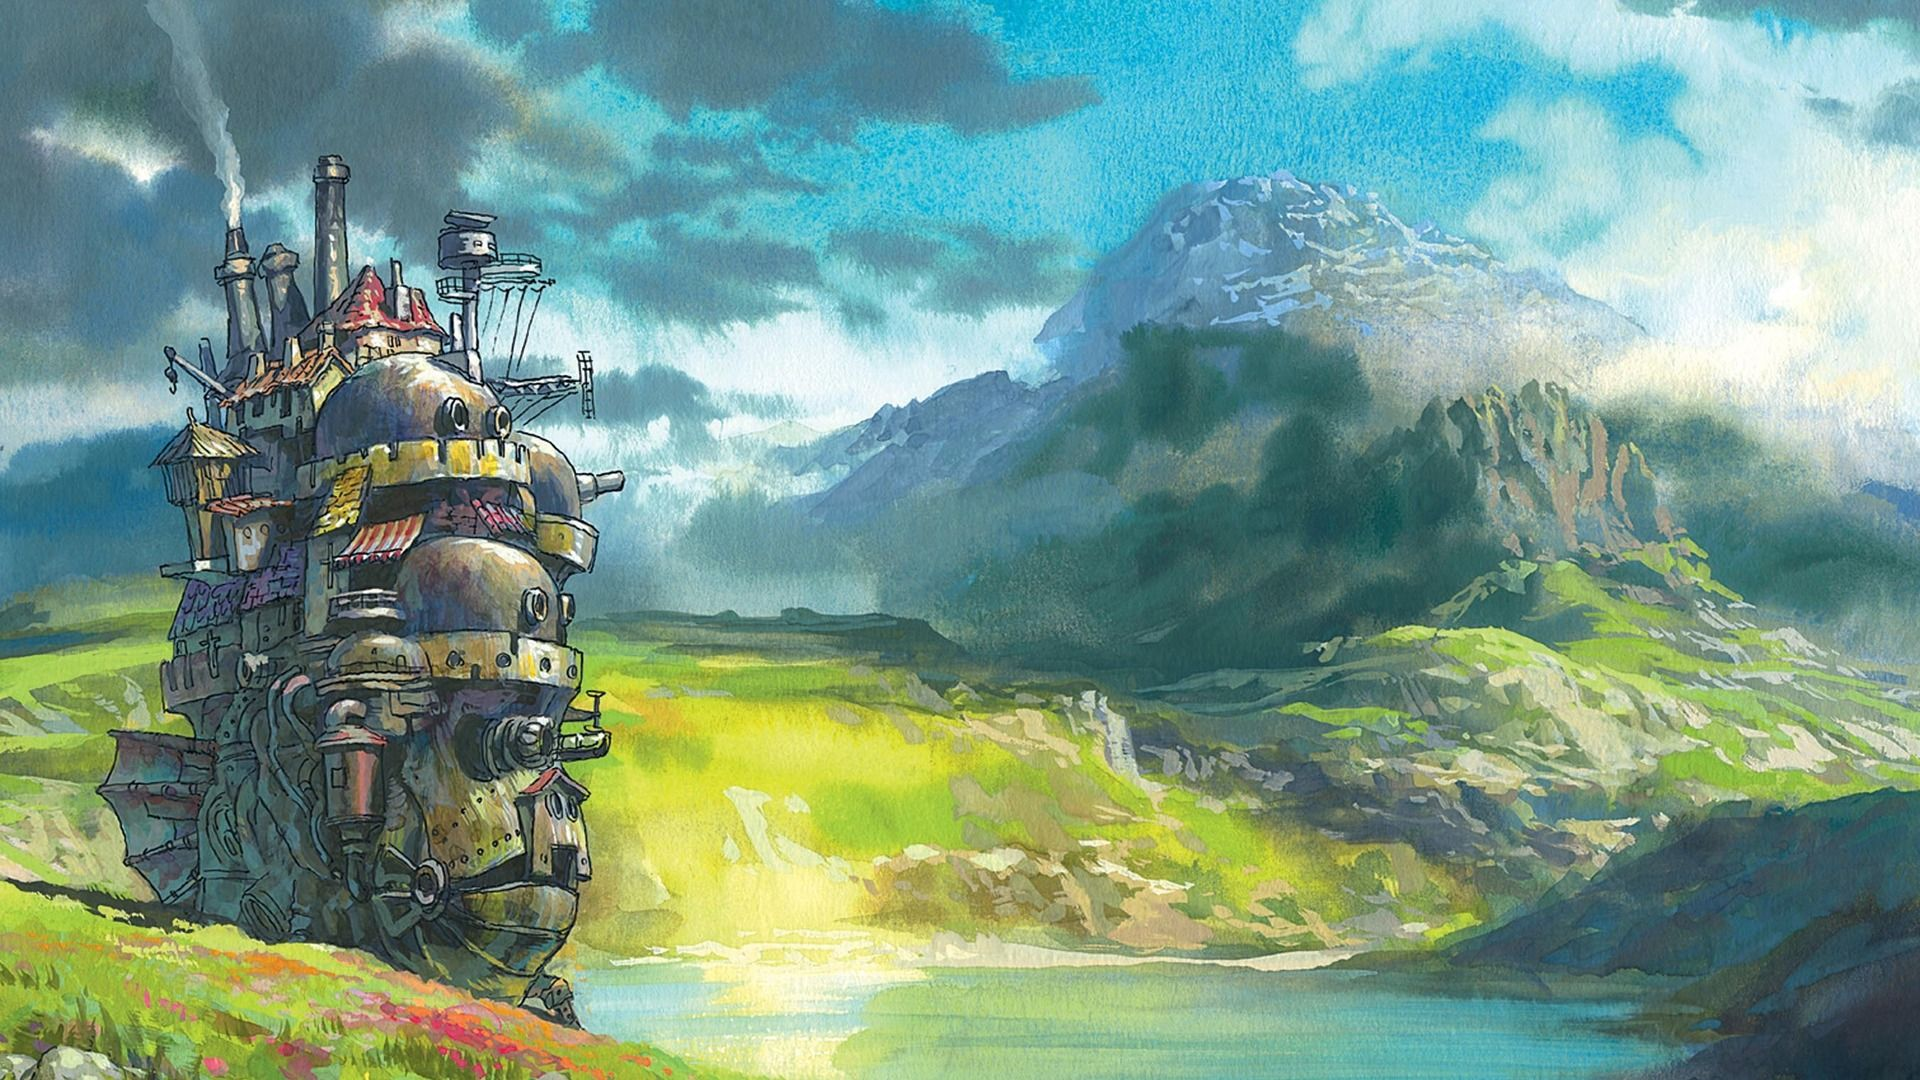 Studio Ghibli Hd Wallpaper 1920x1080 Id46392 En 2019